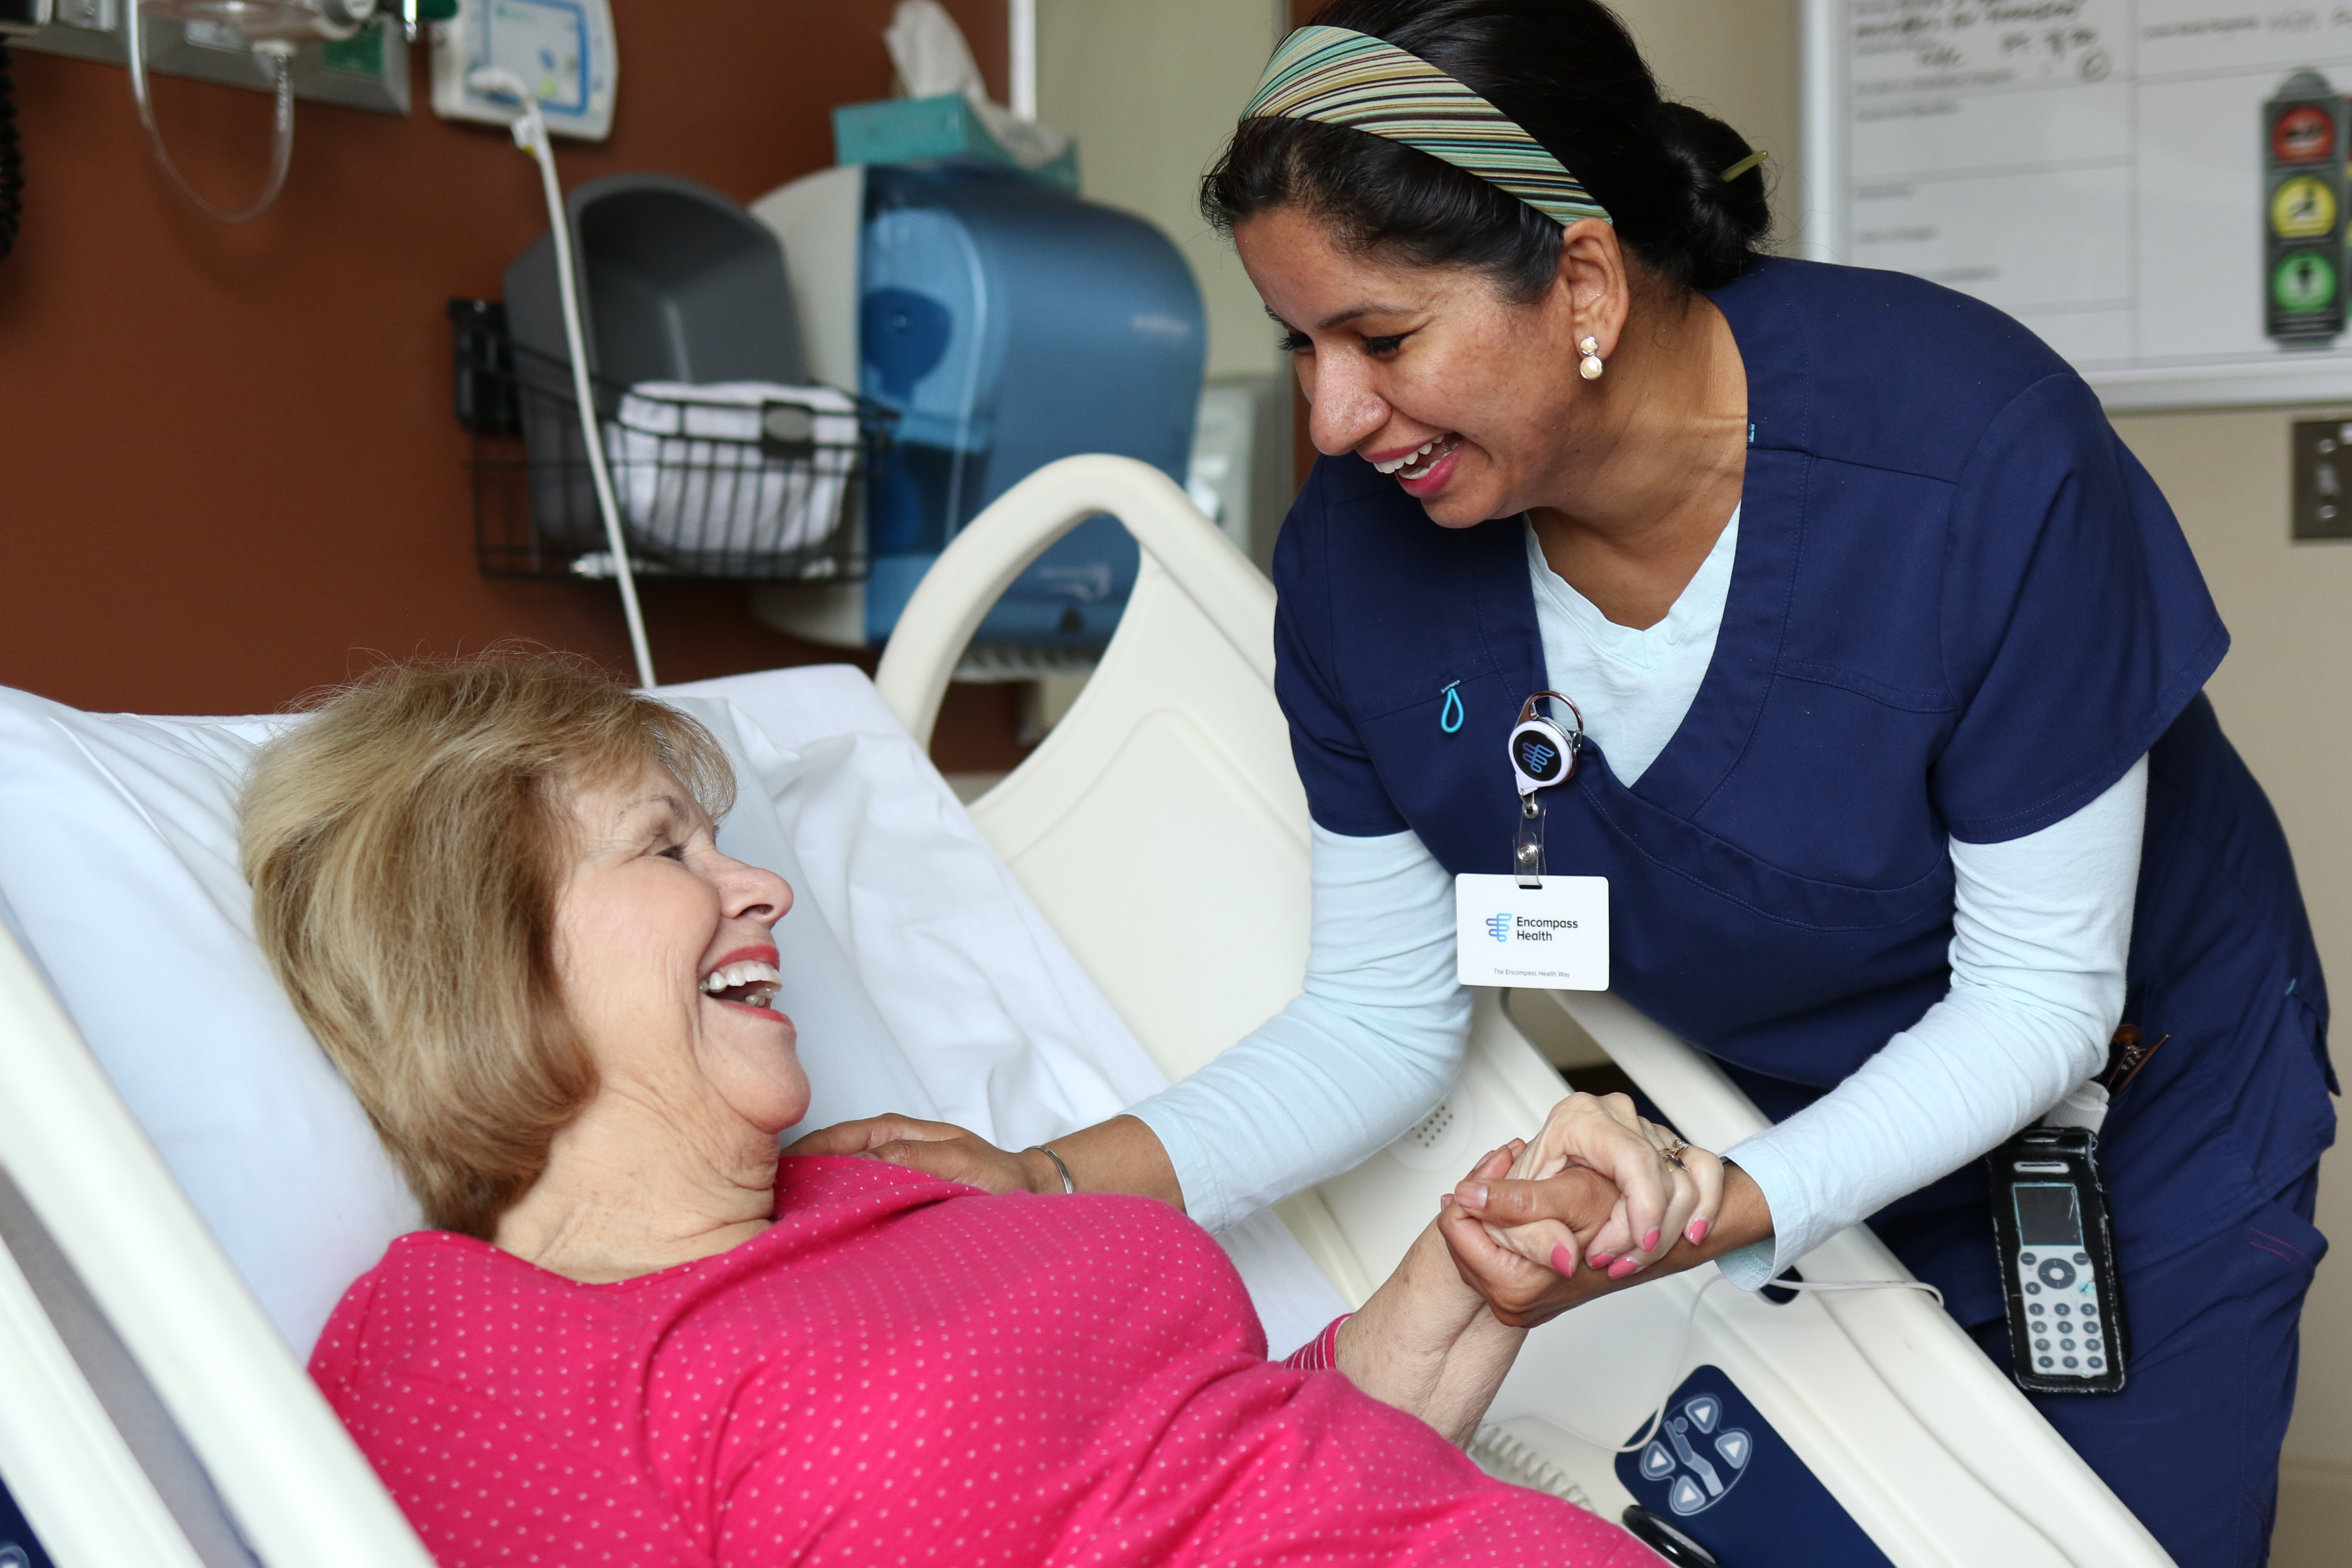 Middle-aged Caucasian female patient lays in hospital bed while female nurse wearing scrubs hold her hand and talks to her